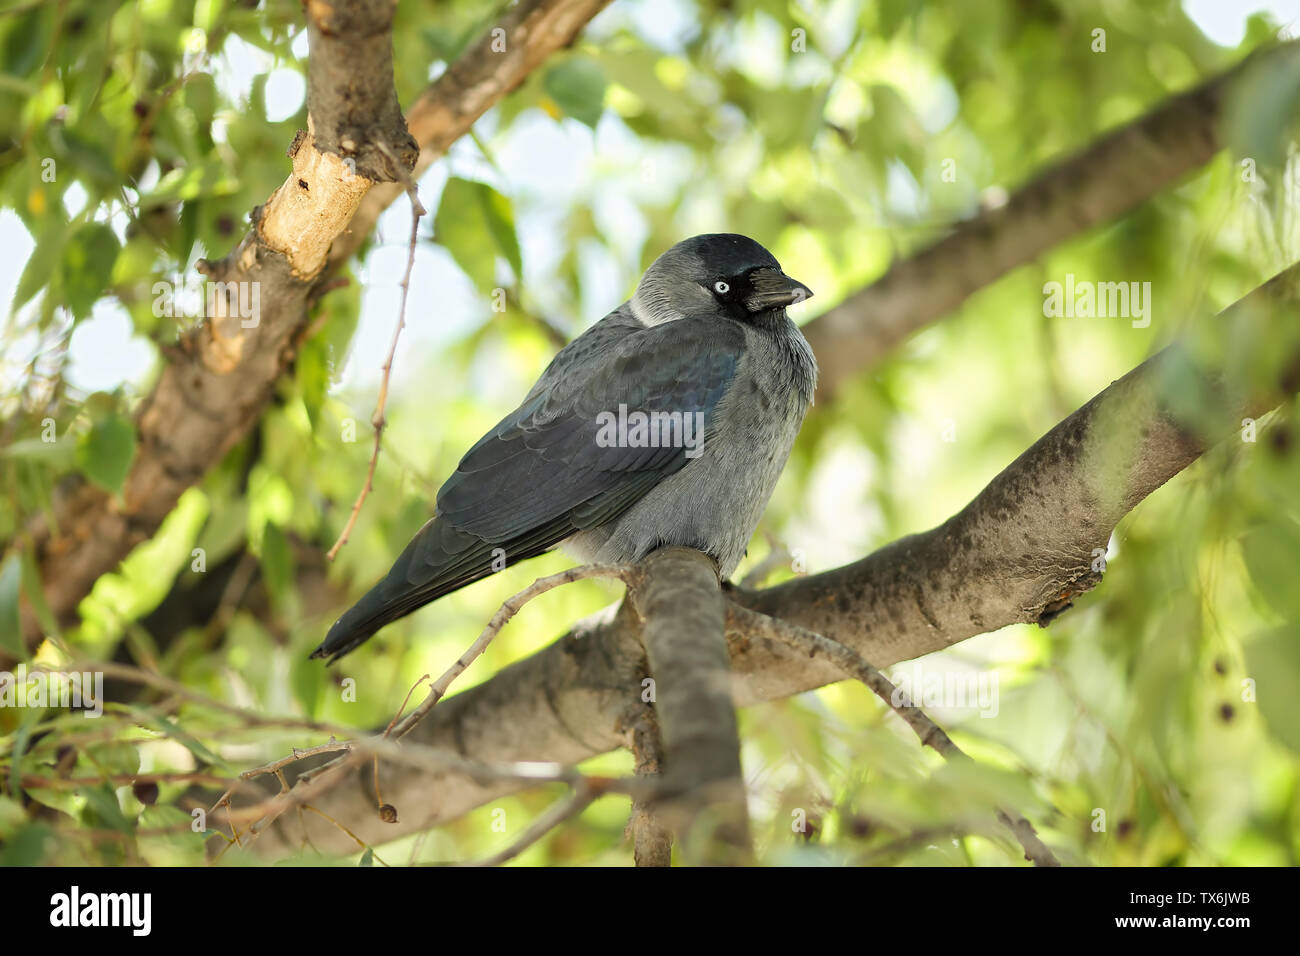 Young Western jackdaw (Corvus monedula) sitting on a branch of a European nettle tree (Celtis australis) and looking curiously to the camera - Stock Image